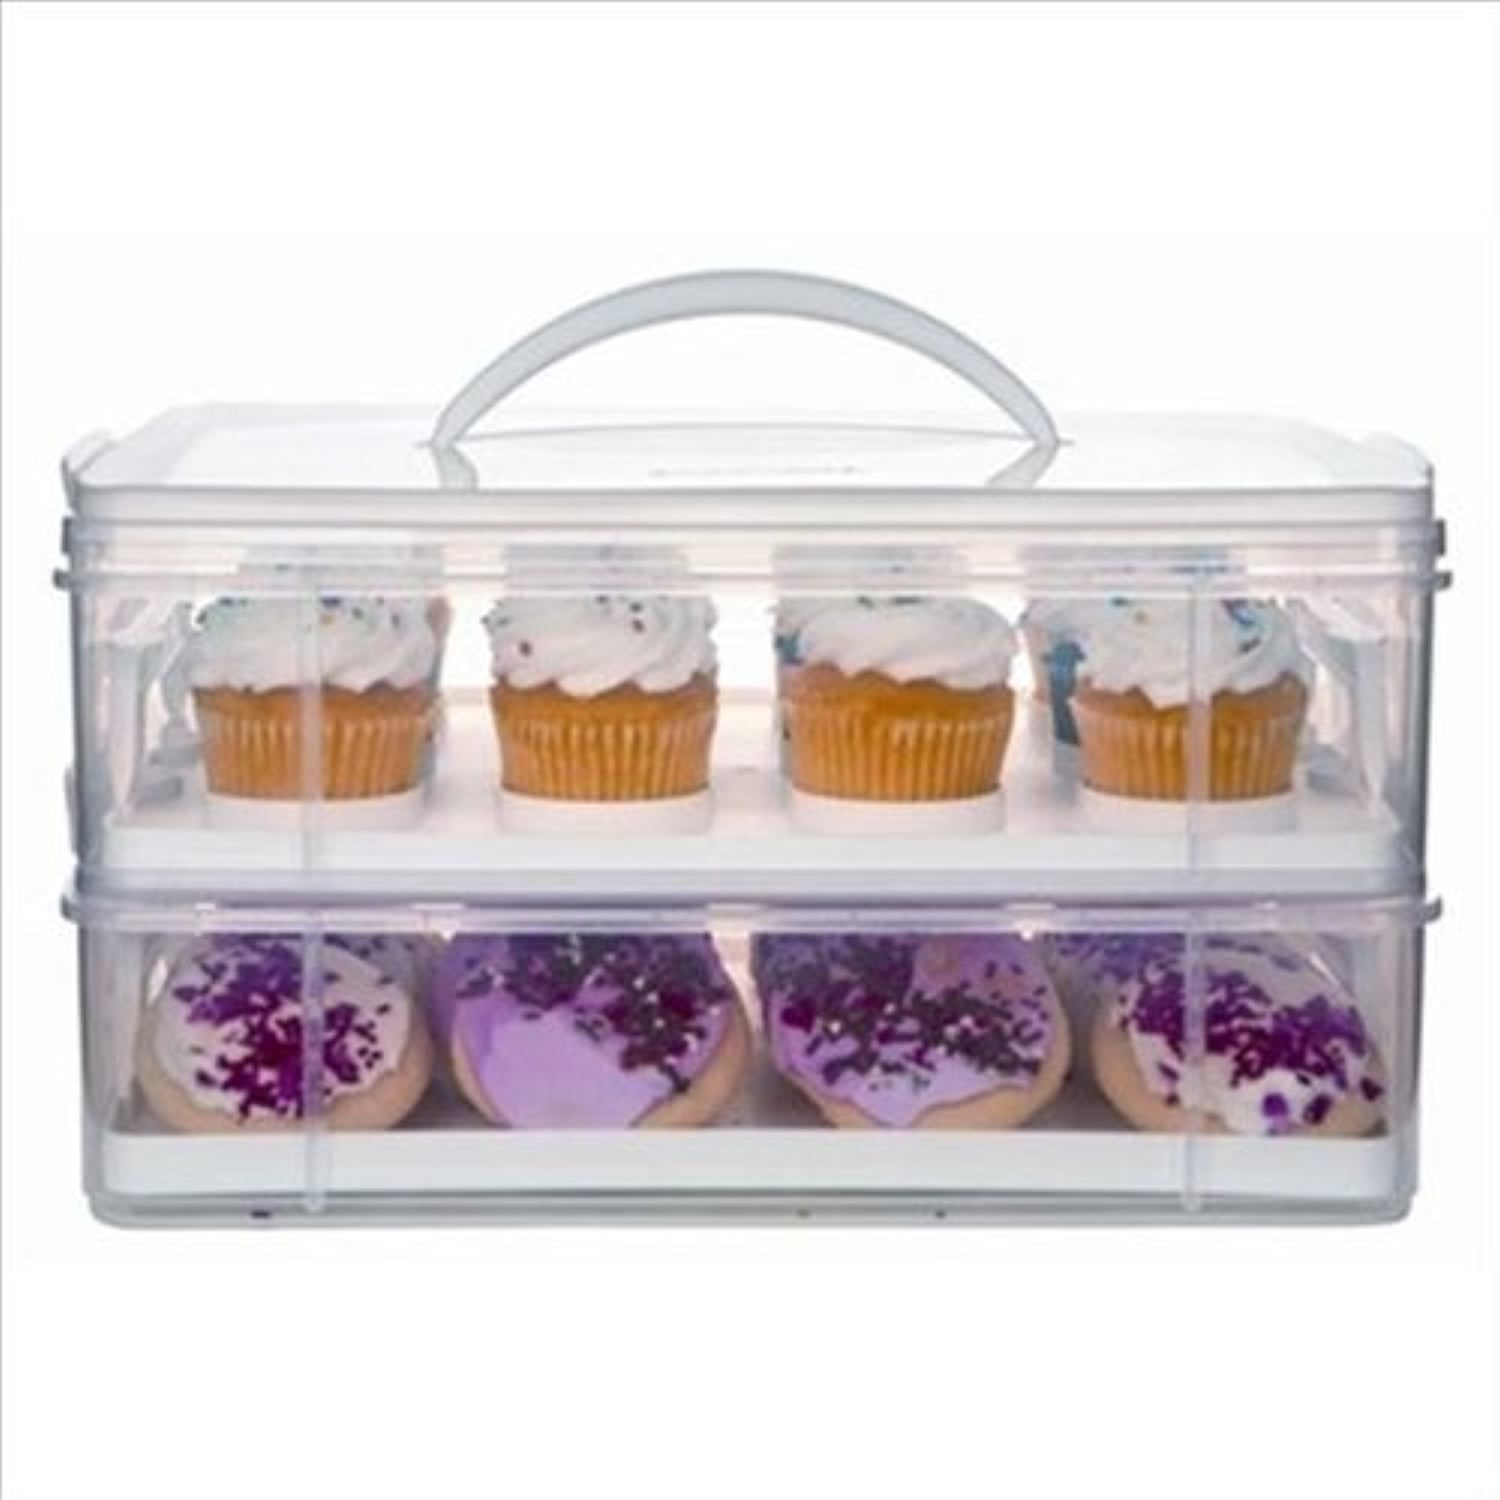 Snapware Snap 'N Stack Cookie and Cupcake voiturerier by FulfillHommest Force